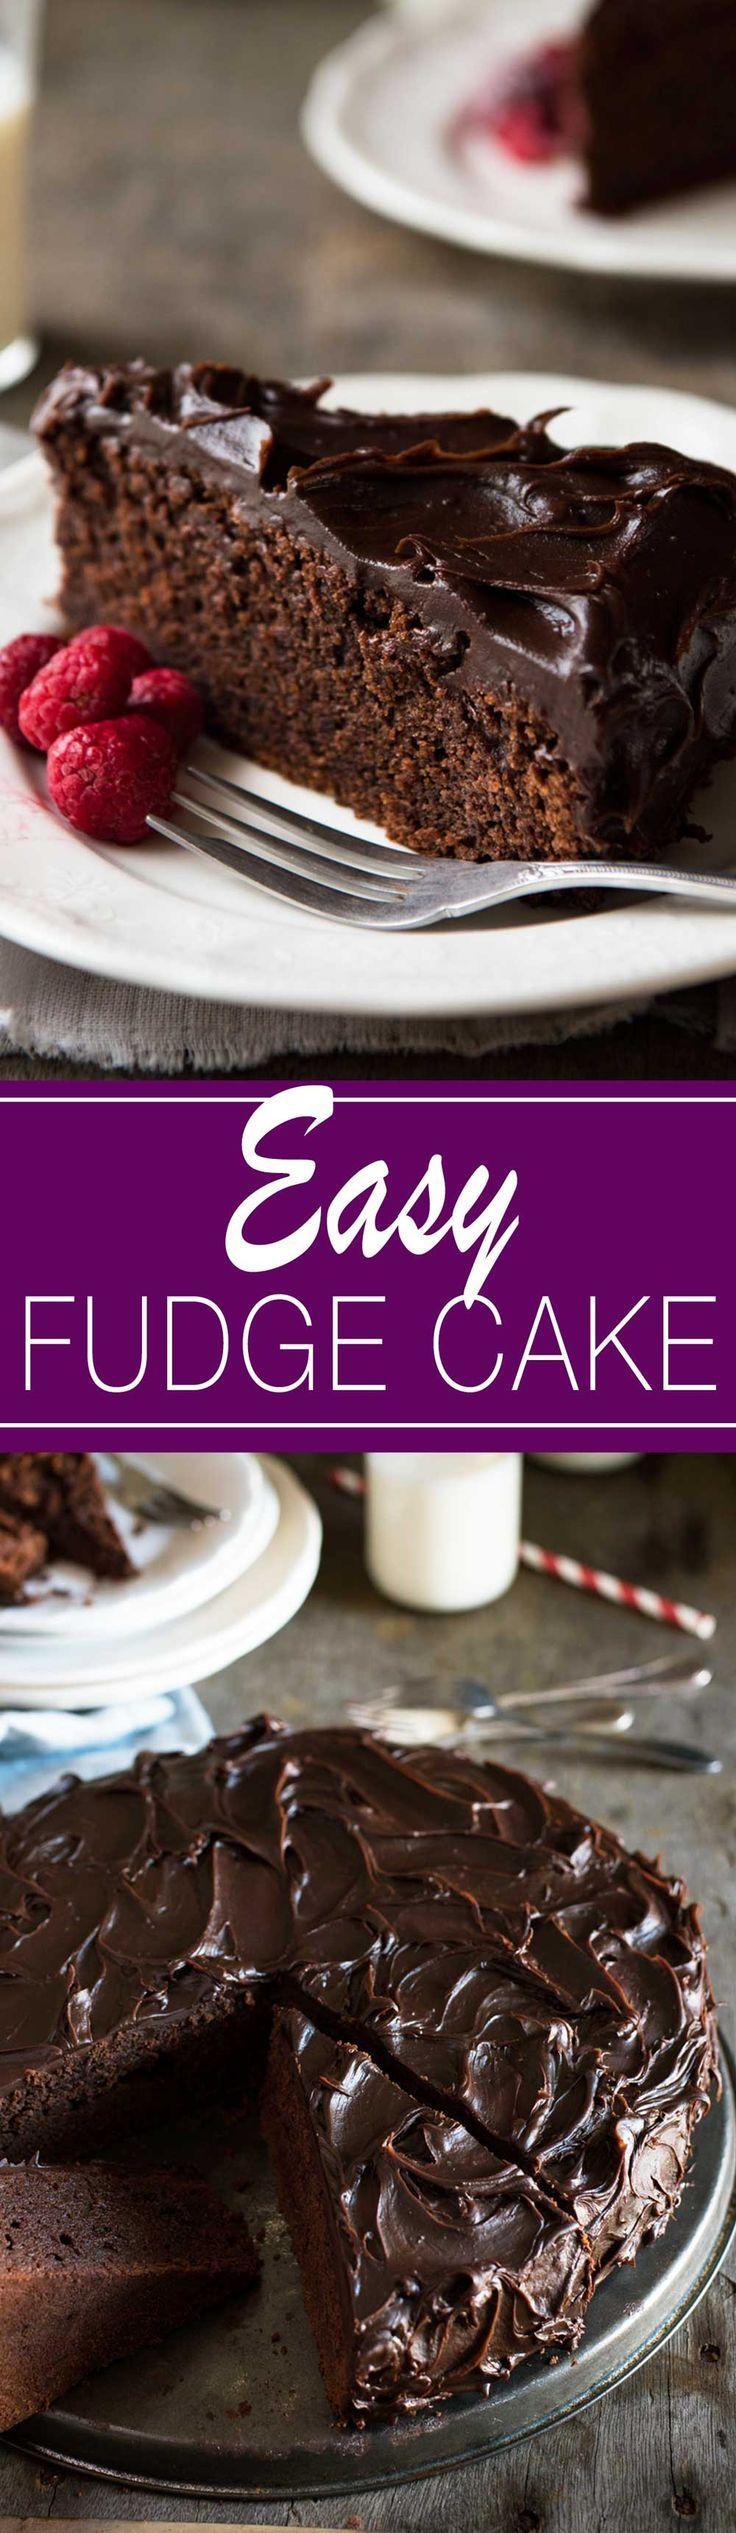 Easy chocolate fudge cake recipe mud cake chocolate for Simple chocolate fudge cake